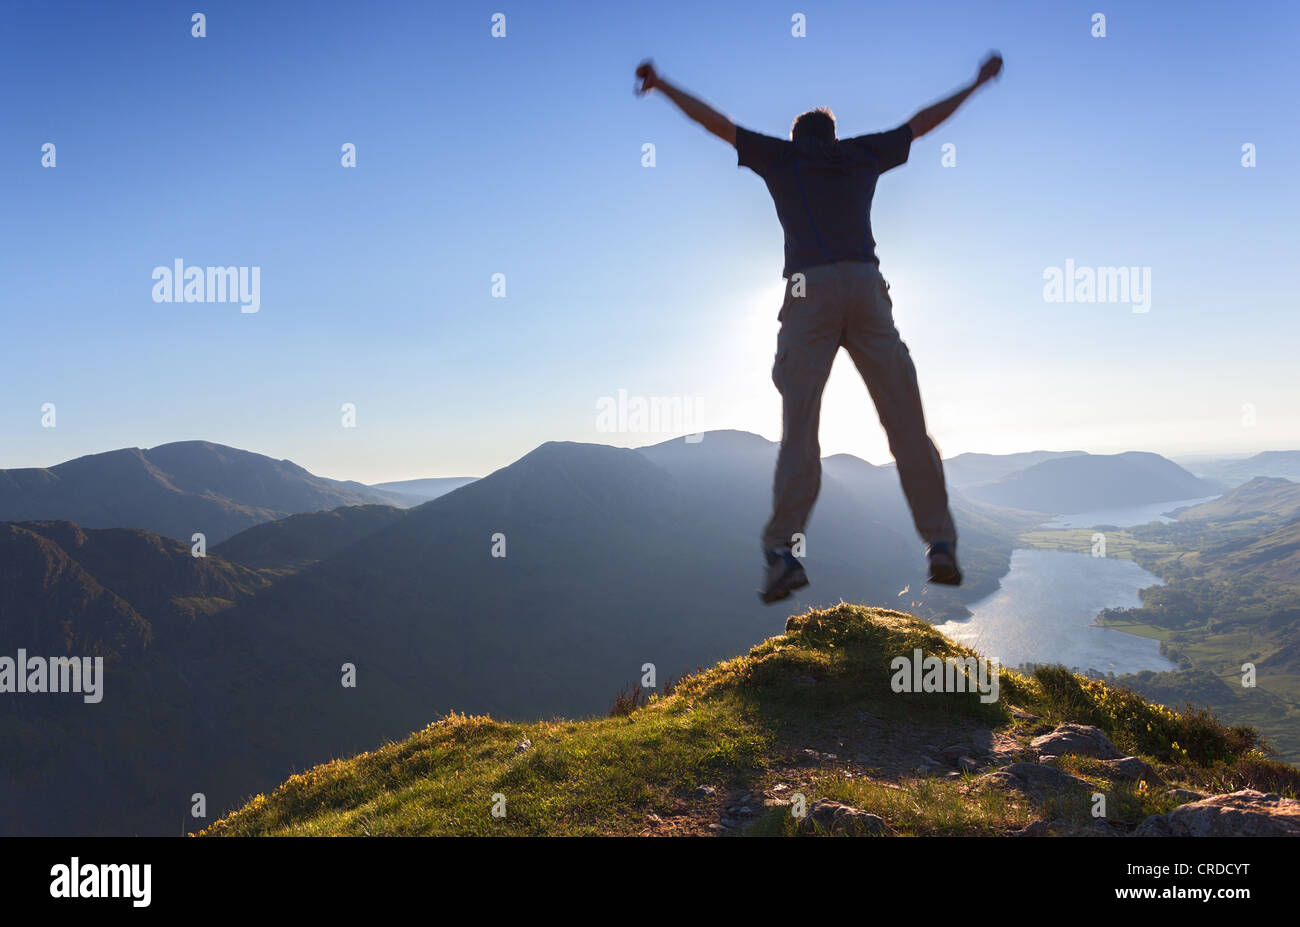 A man jumps off a the edge of a mountain. - Stock Image